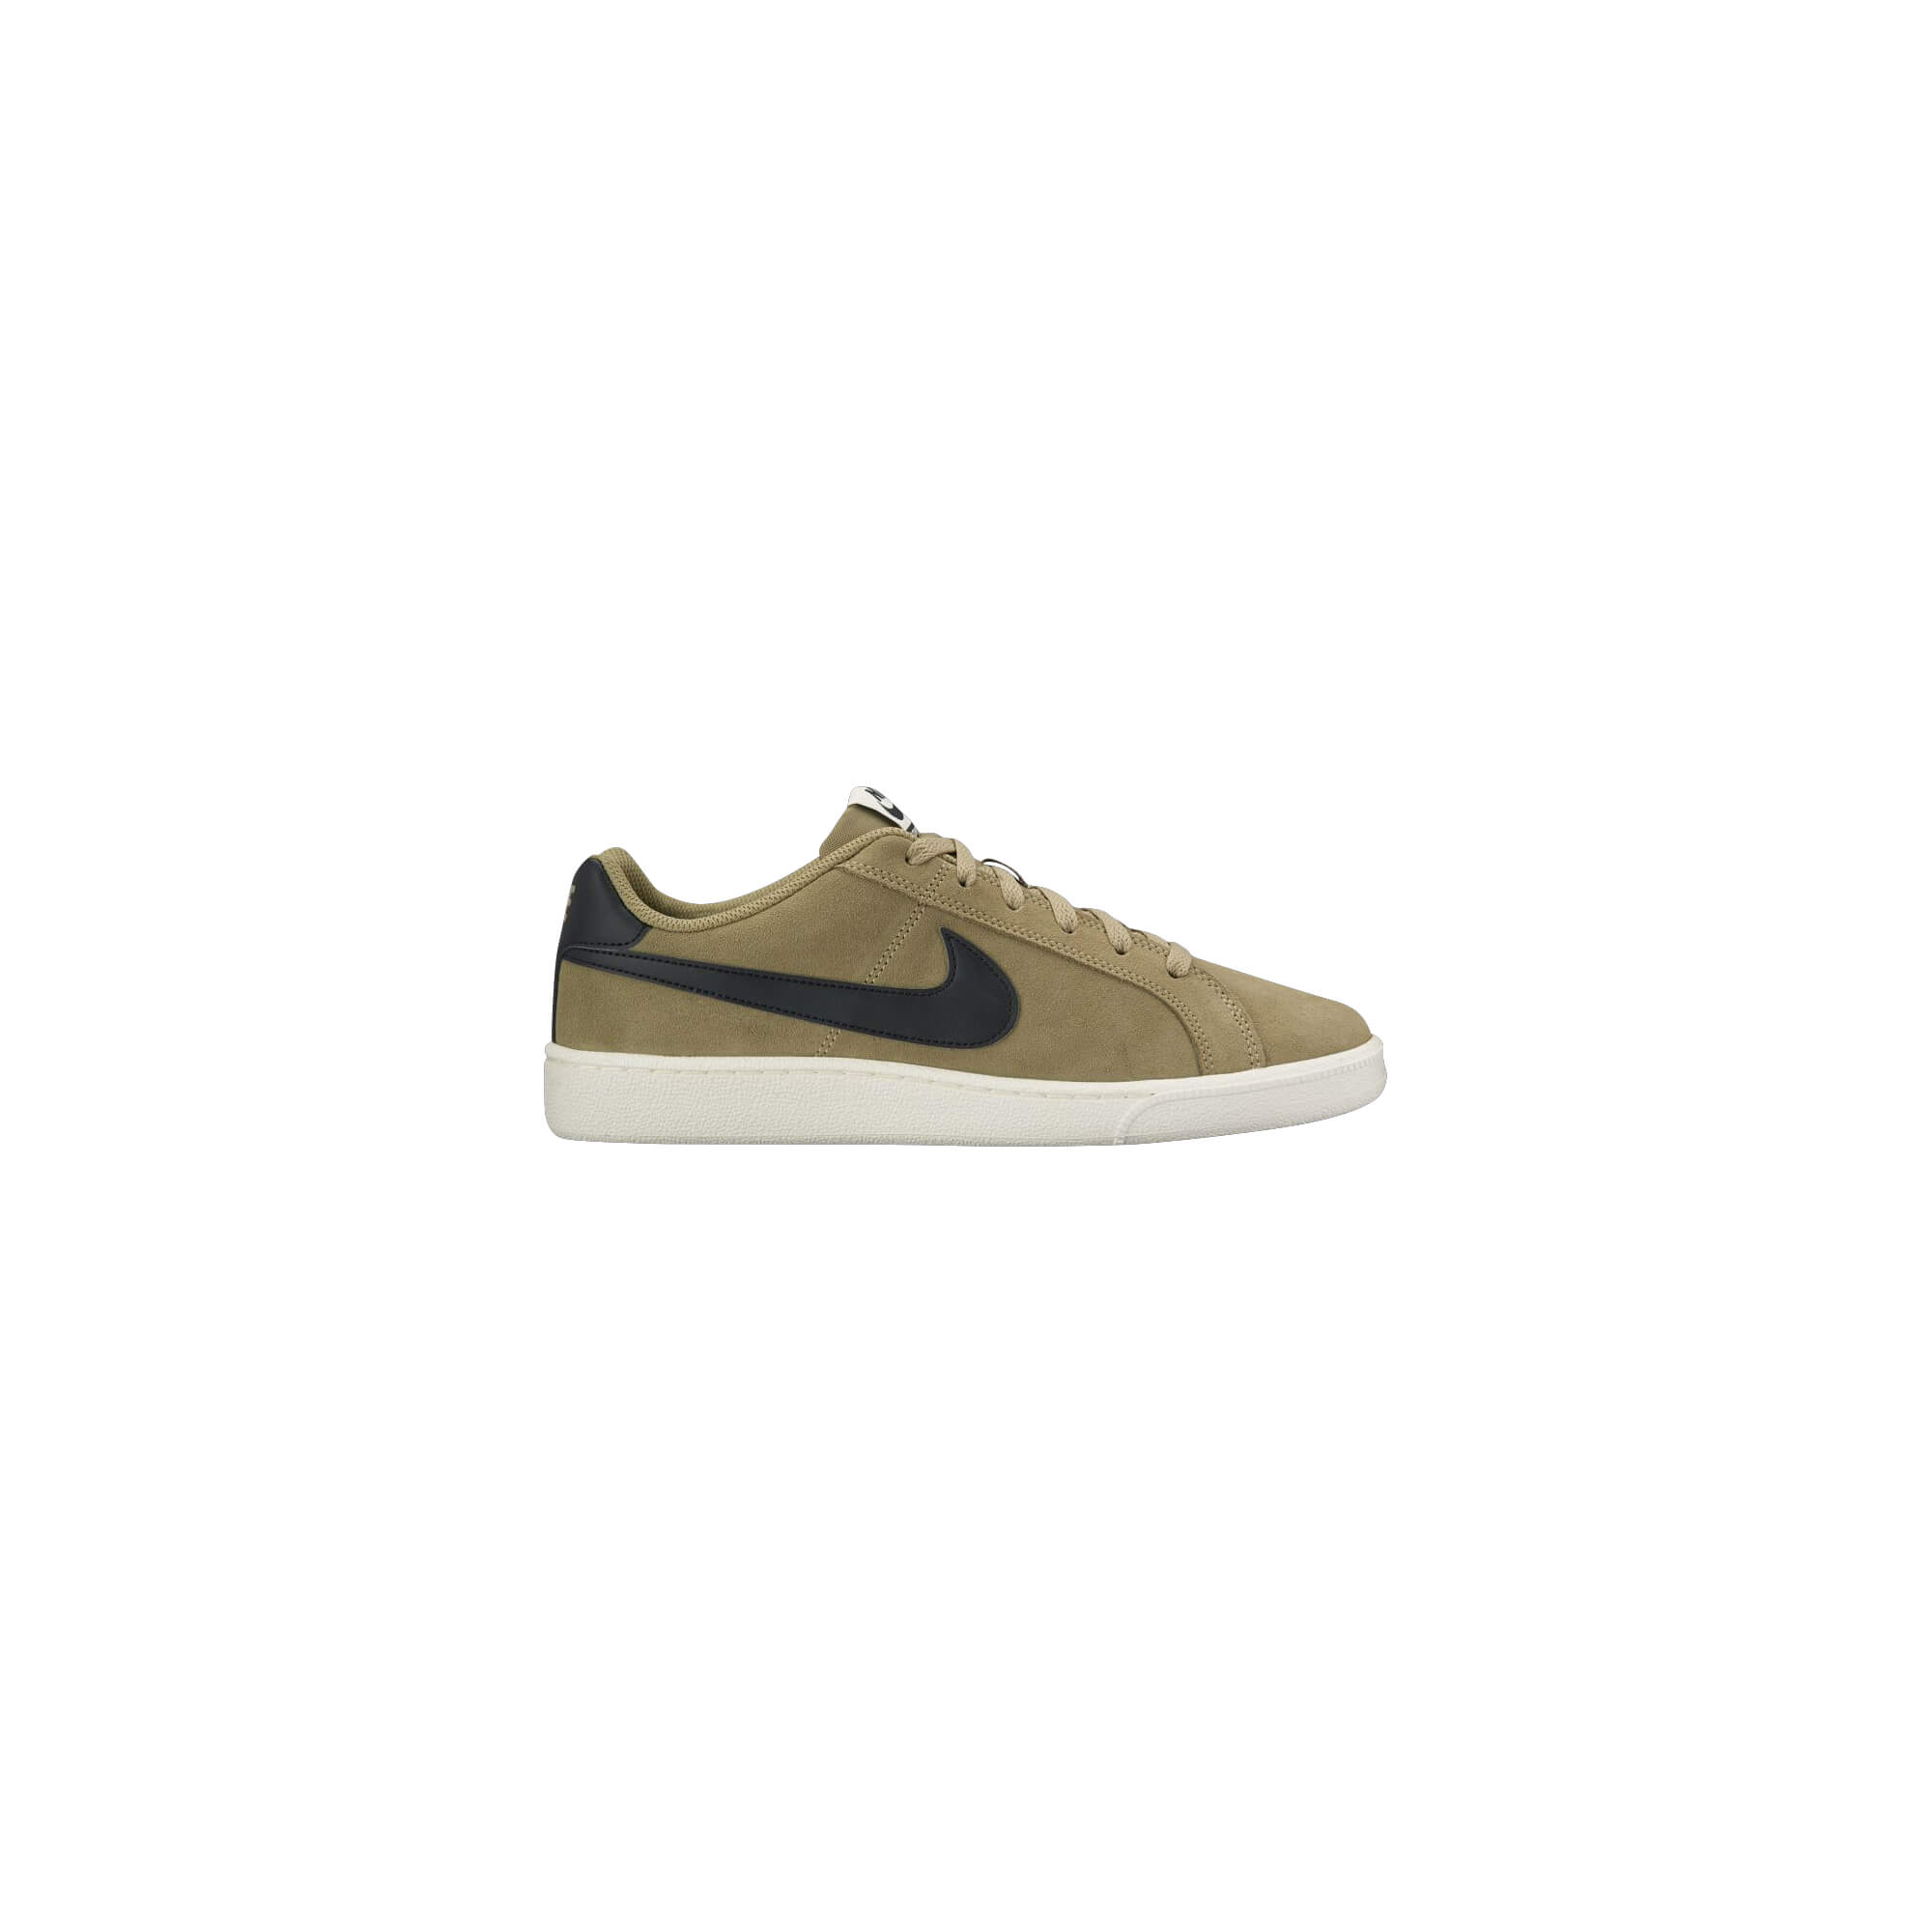 Nike Court Royale Suede, vel. 43